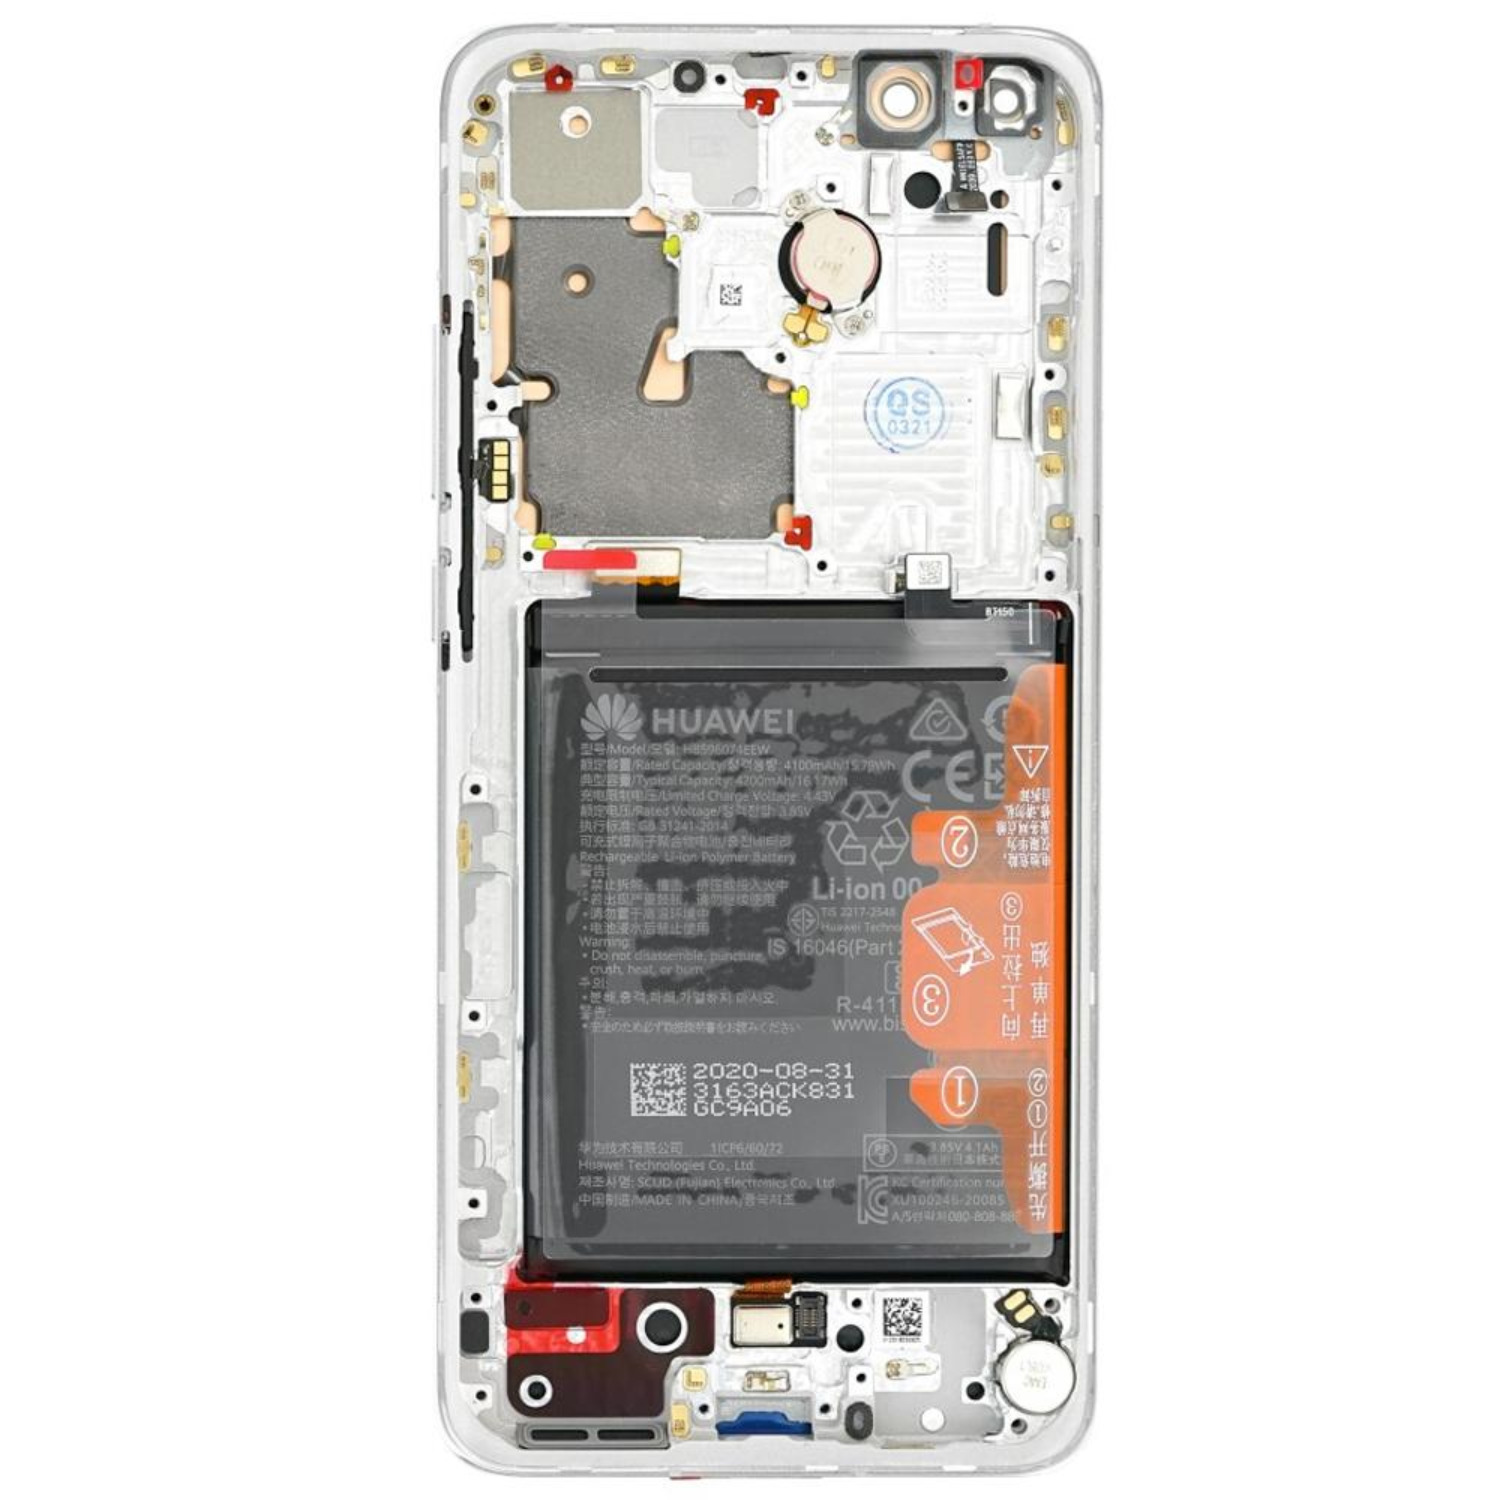 Huawei P40 Pro Plus Replacement Screen Inc Battery (Frost Silver / Ice White) 02353RBJ